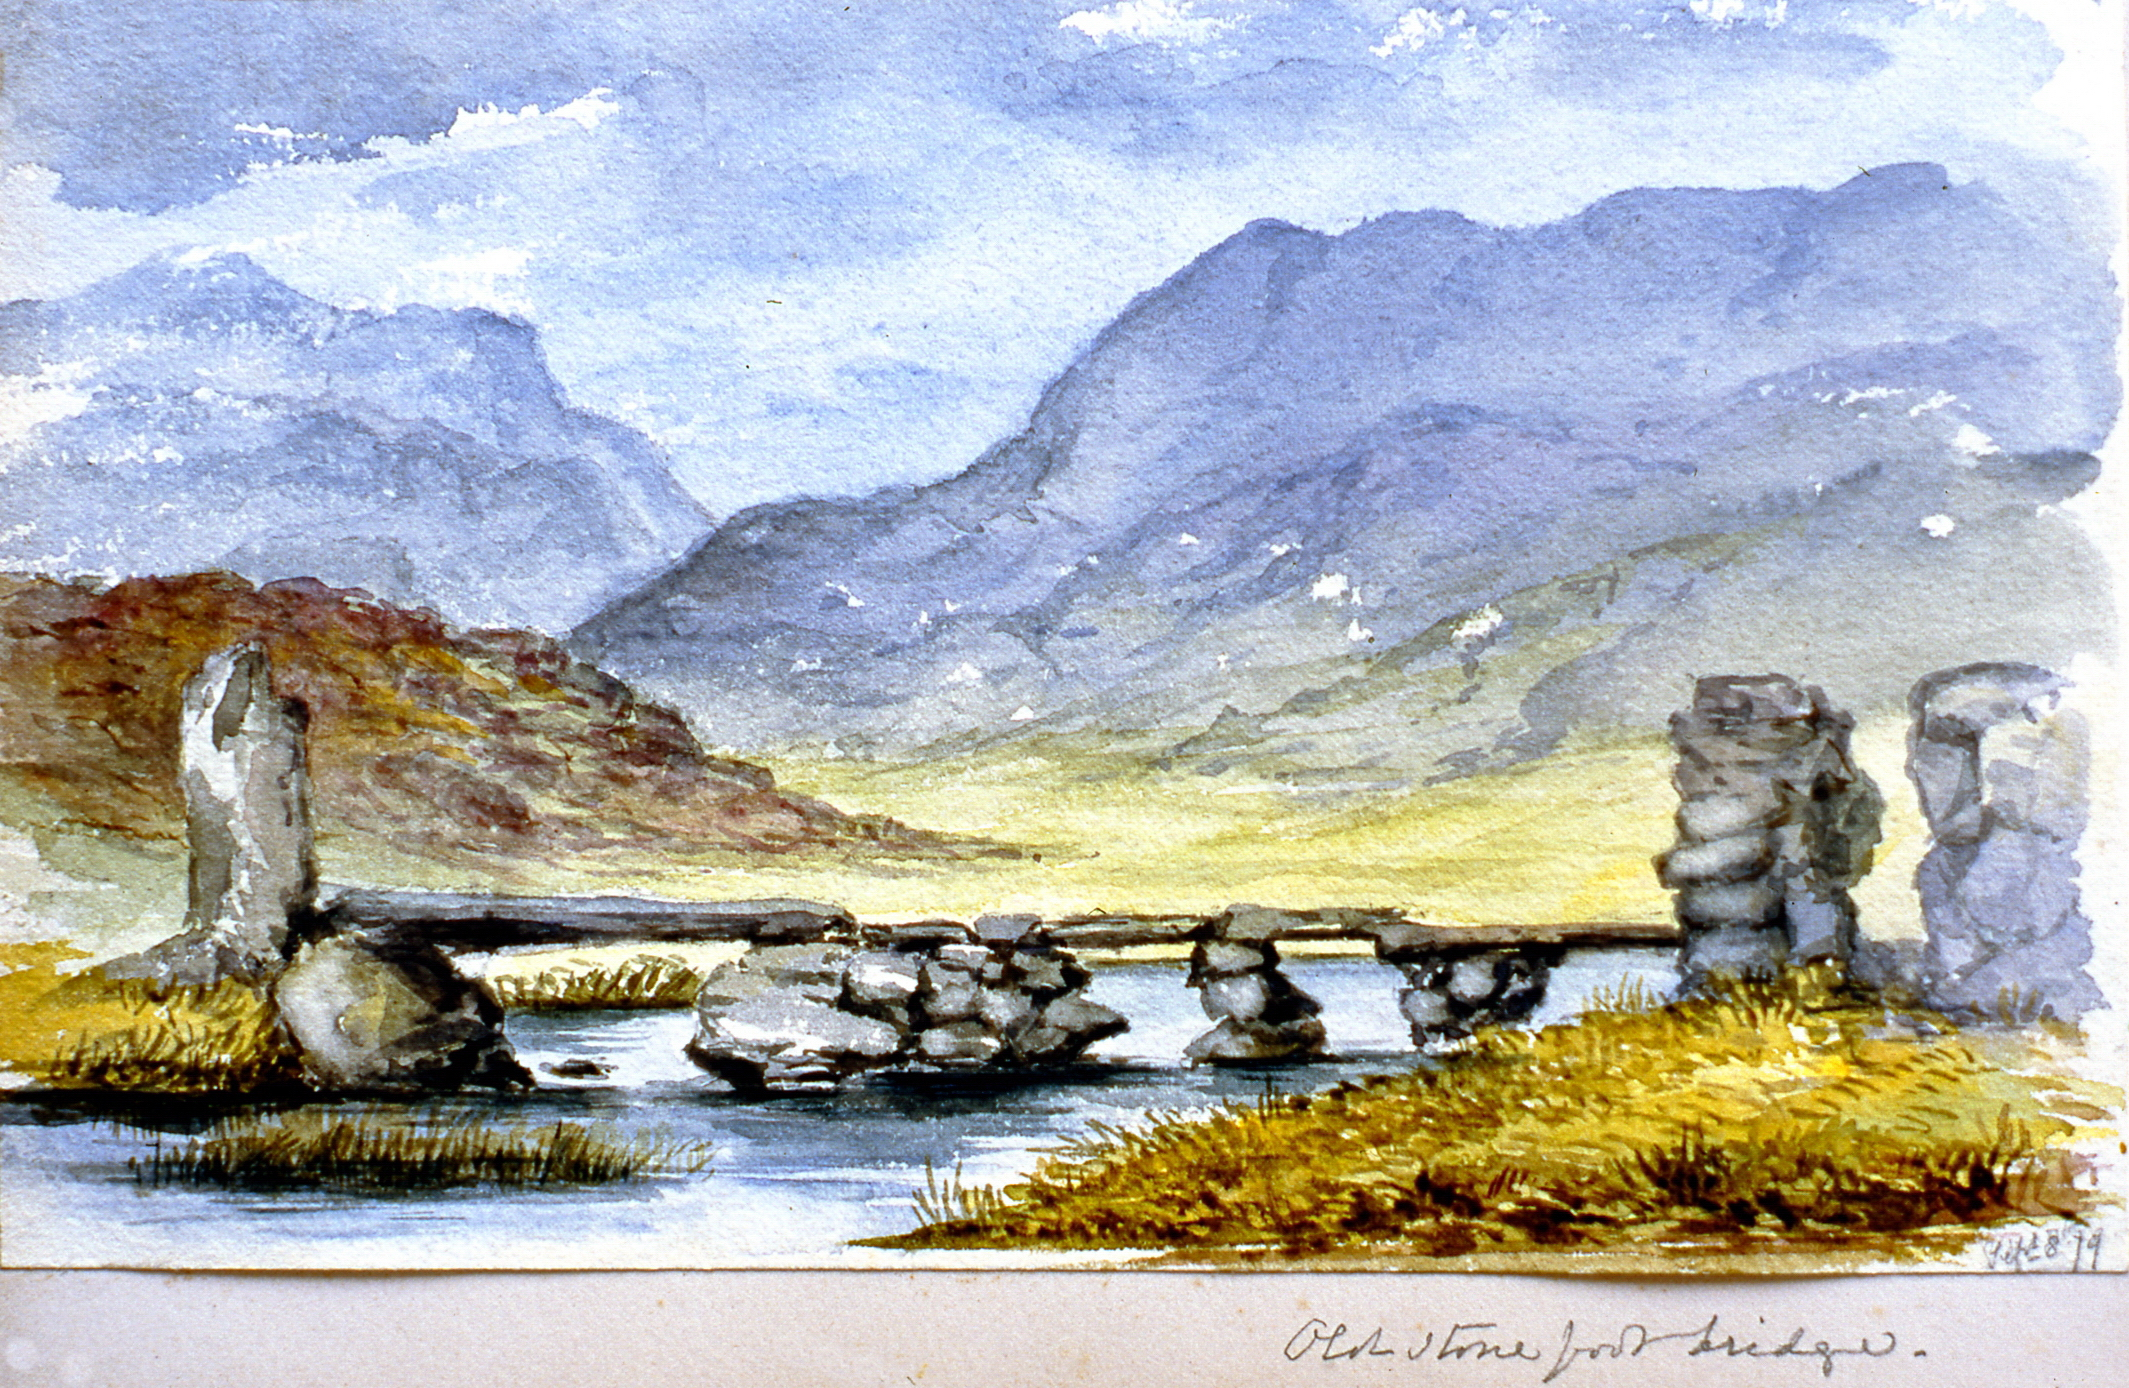 """Old stone footbridge. Cum Naucle - Daubeds (?) , September 1879,Julia Bullock Webster, watercolour on paper, 5 1/2""""x 9"""", 2003.02.53, gift of The Grist Mill at Keremeos"""